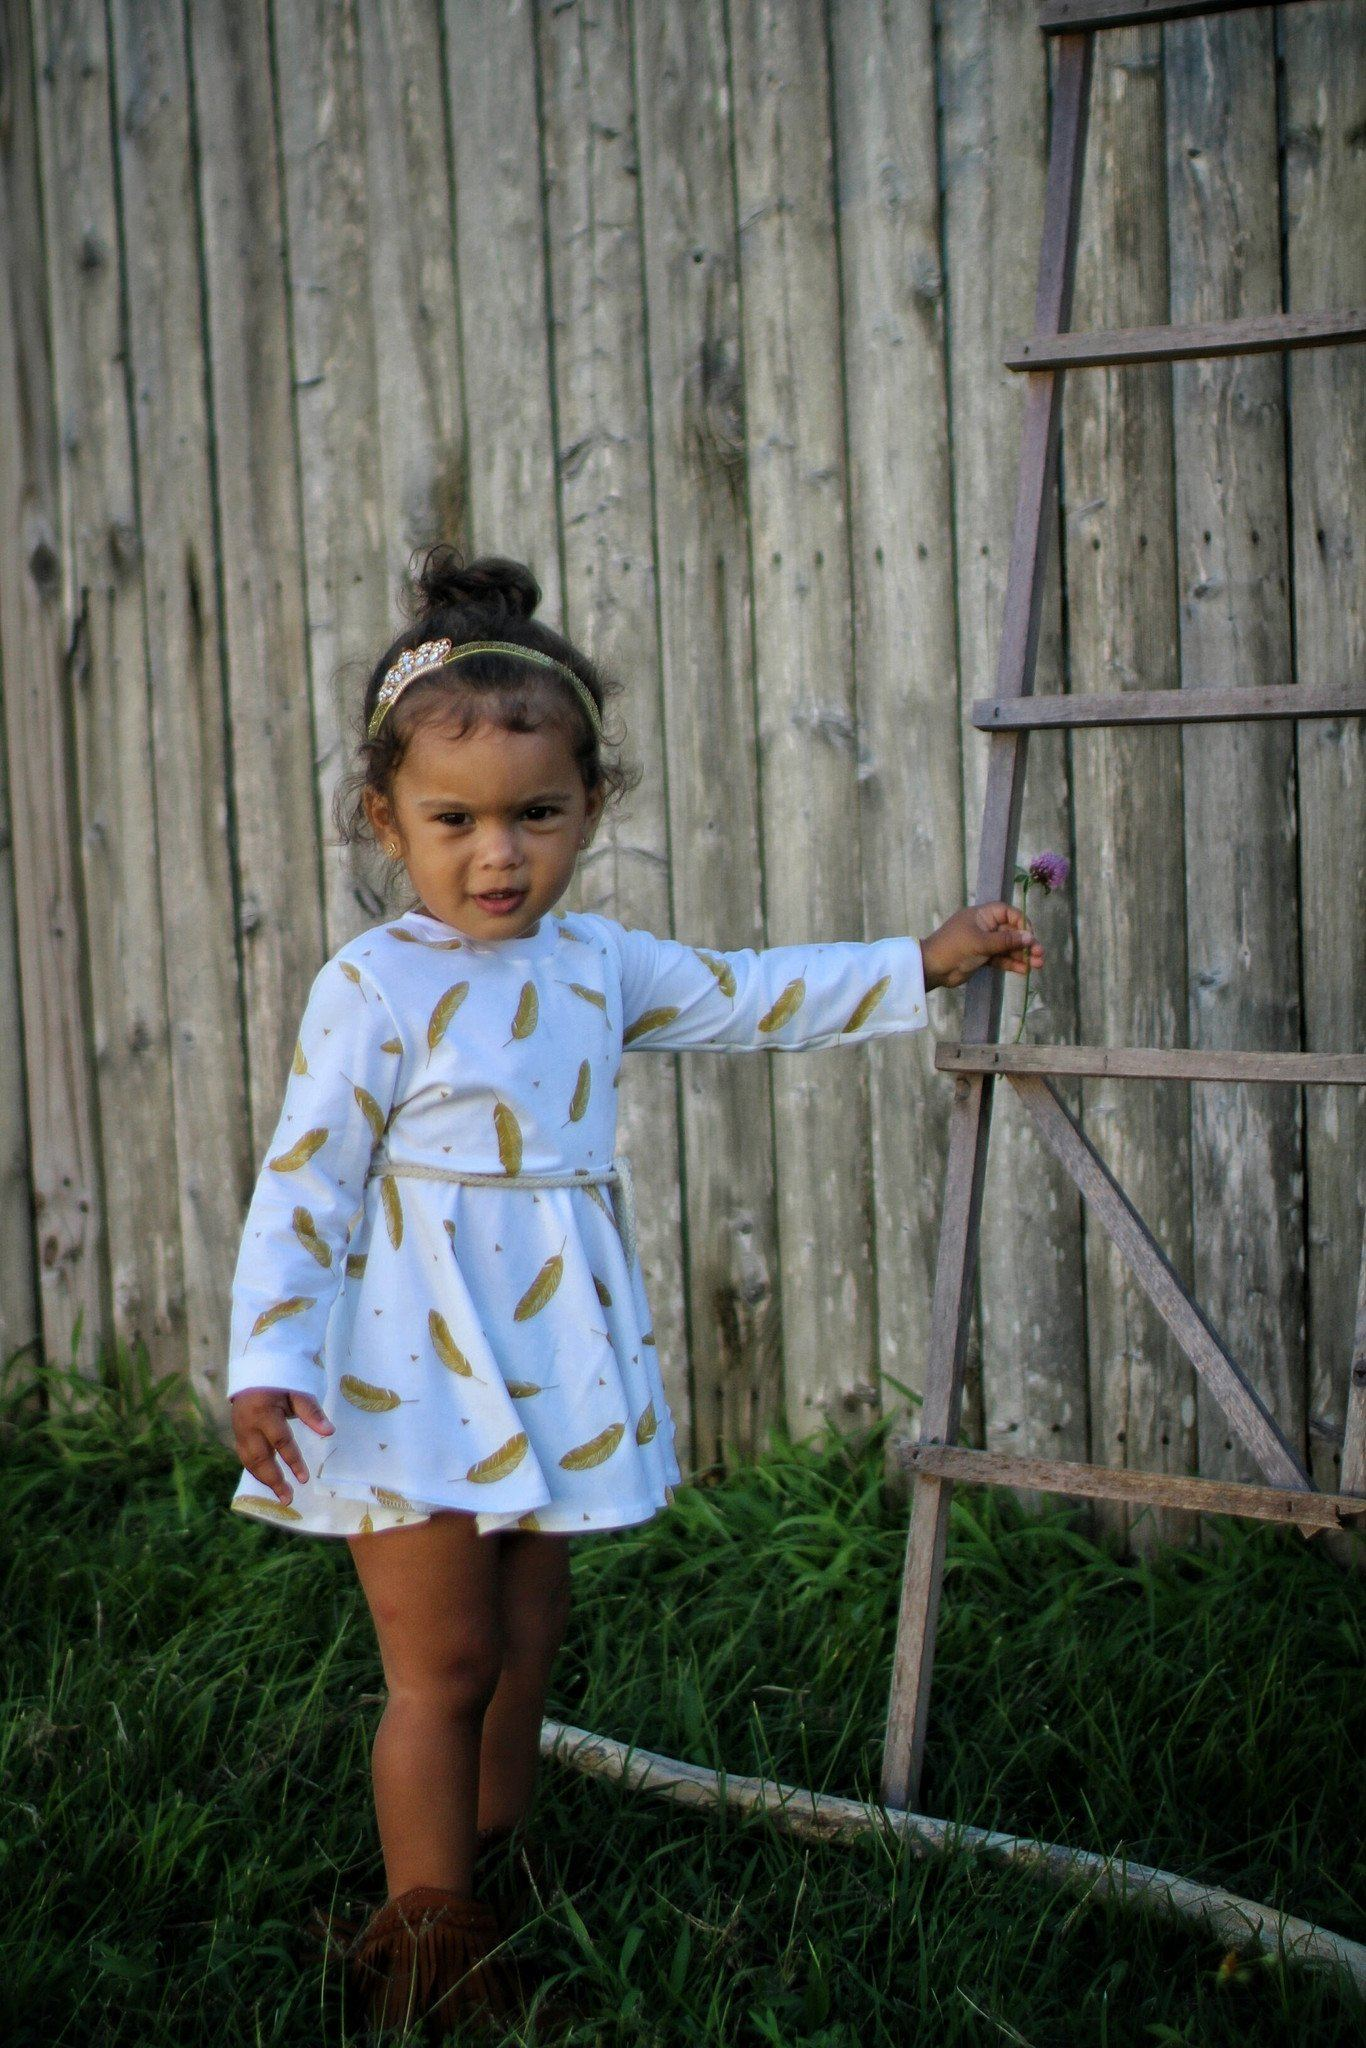 Dress - White & Gold Dress For Toddler Girl - Golden Feathers